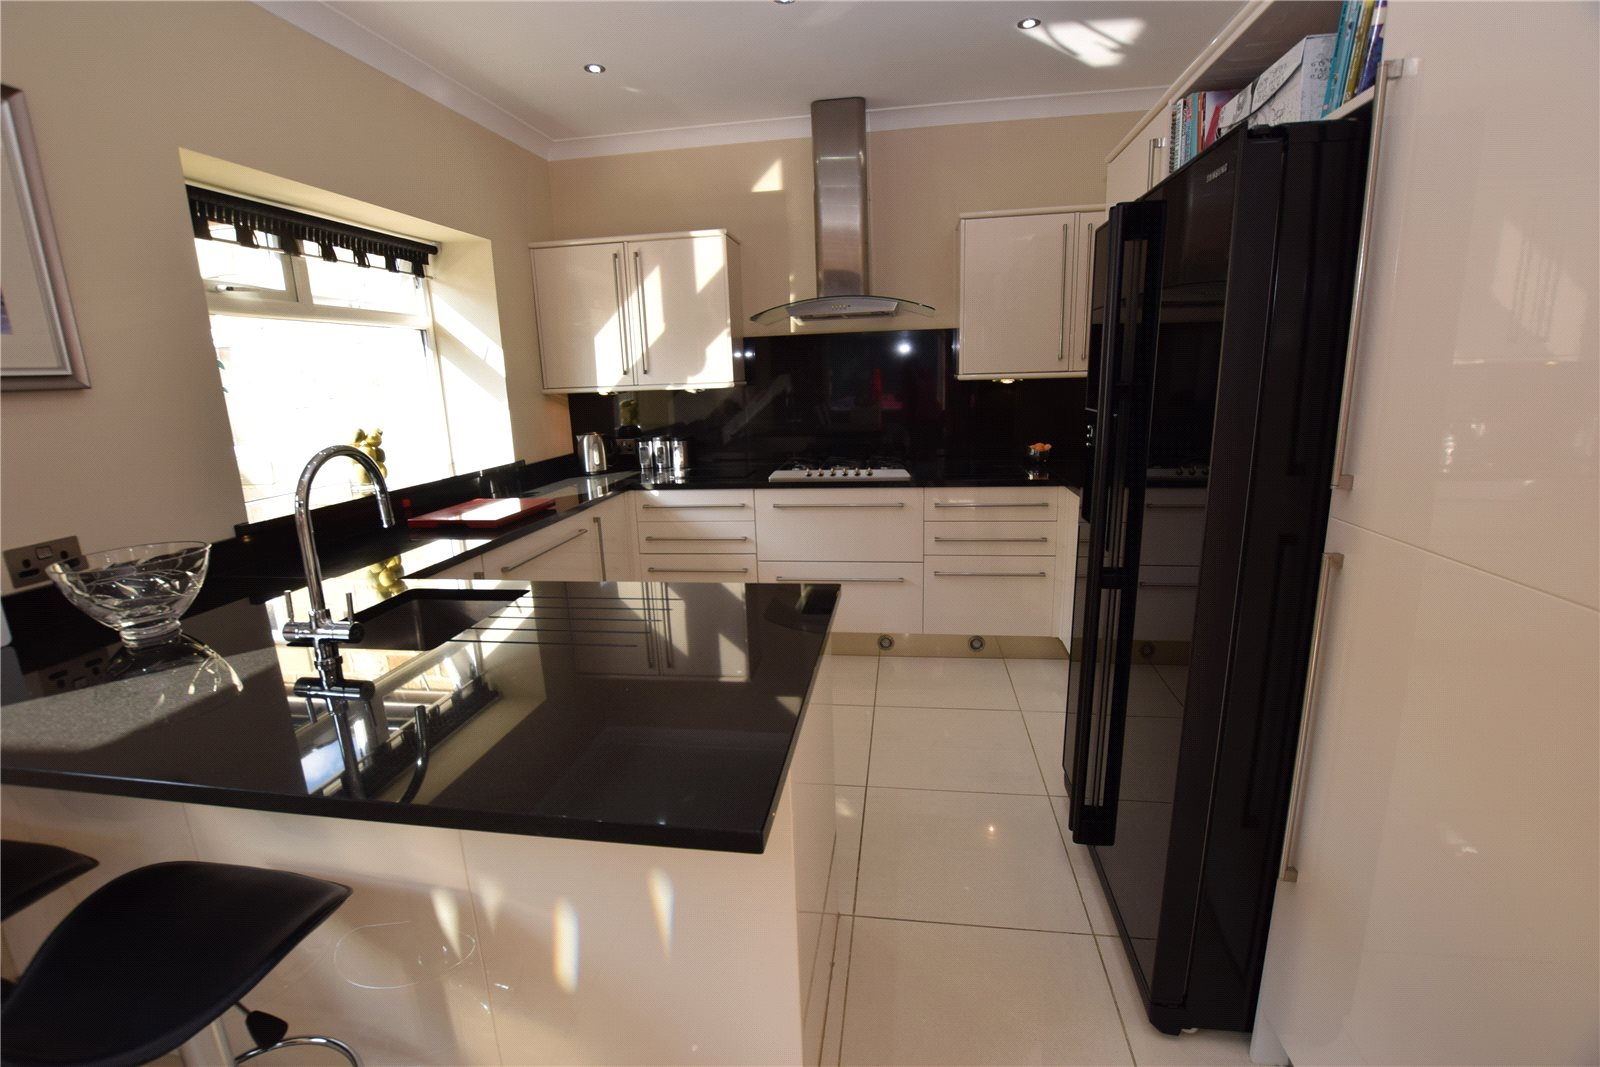 Property for sale in Wortley, kitchen area, sleek and modern black and white finish